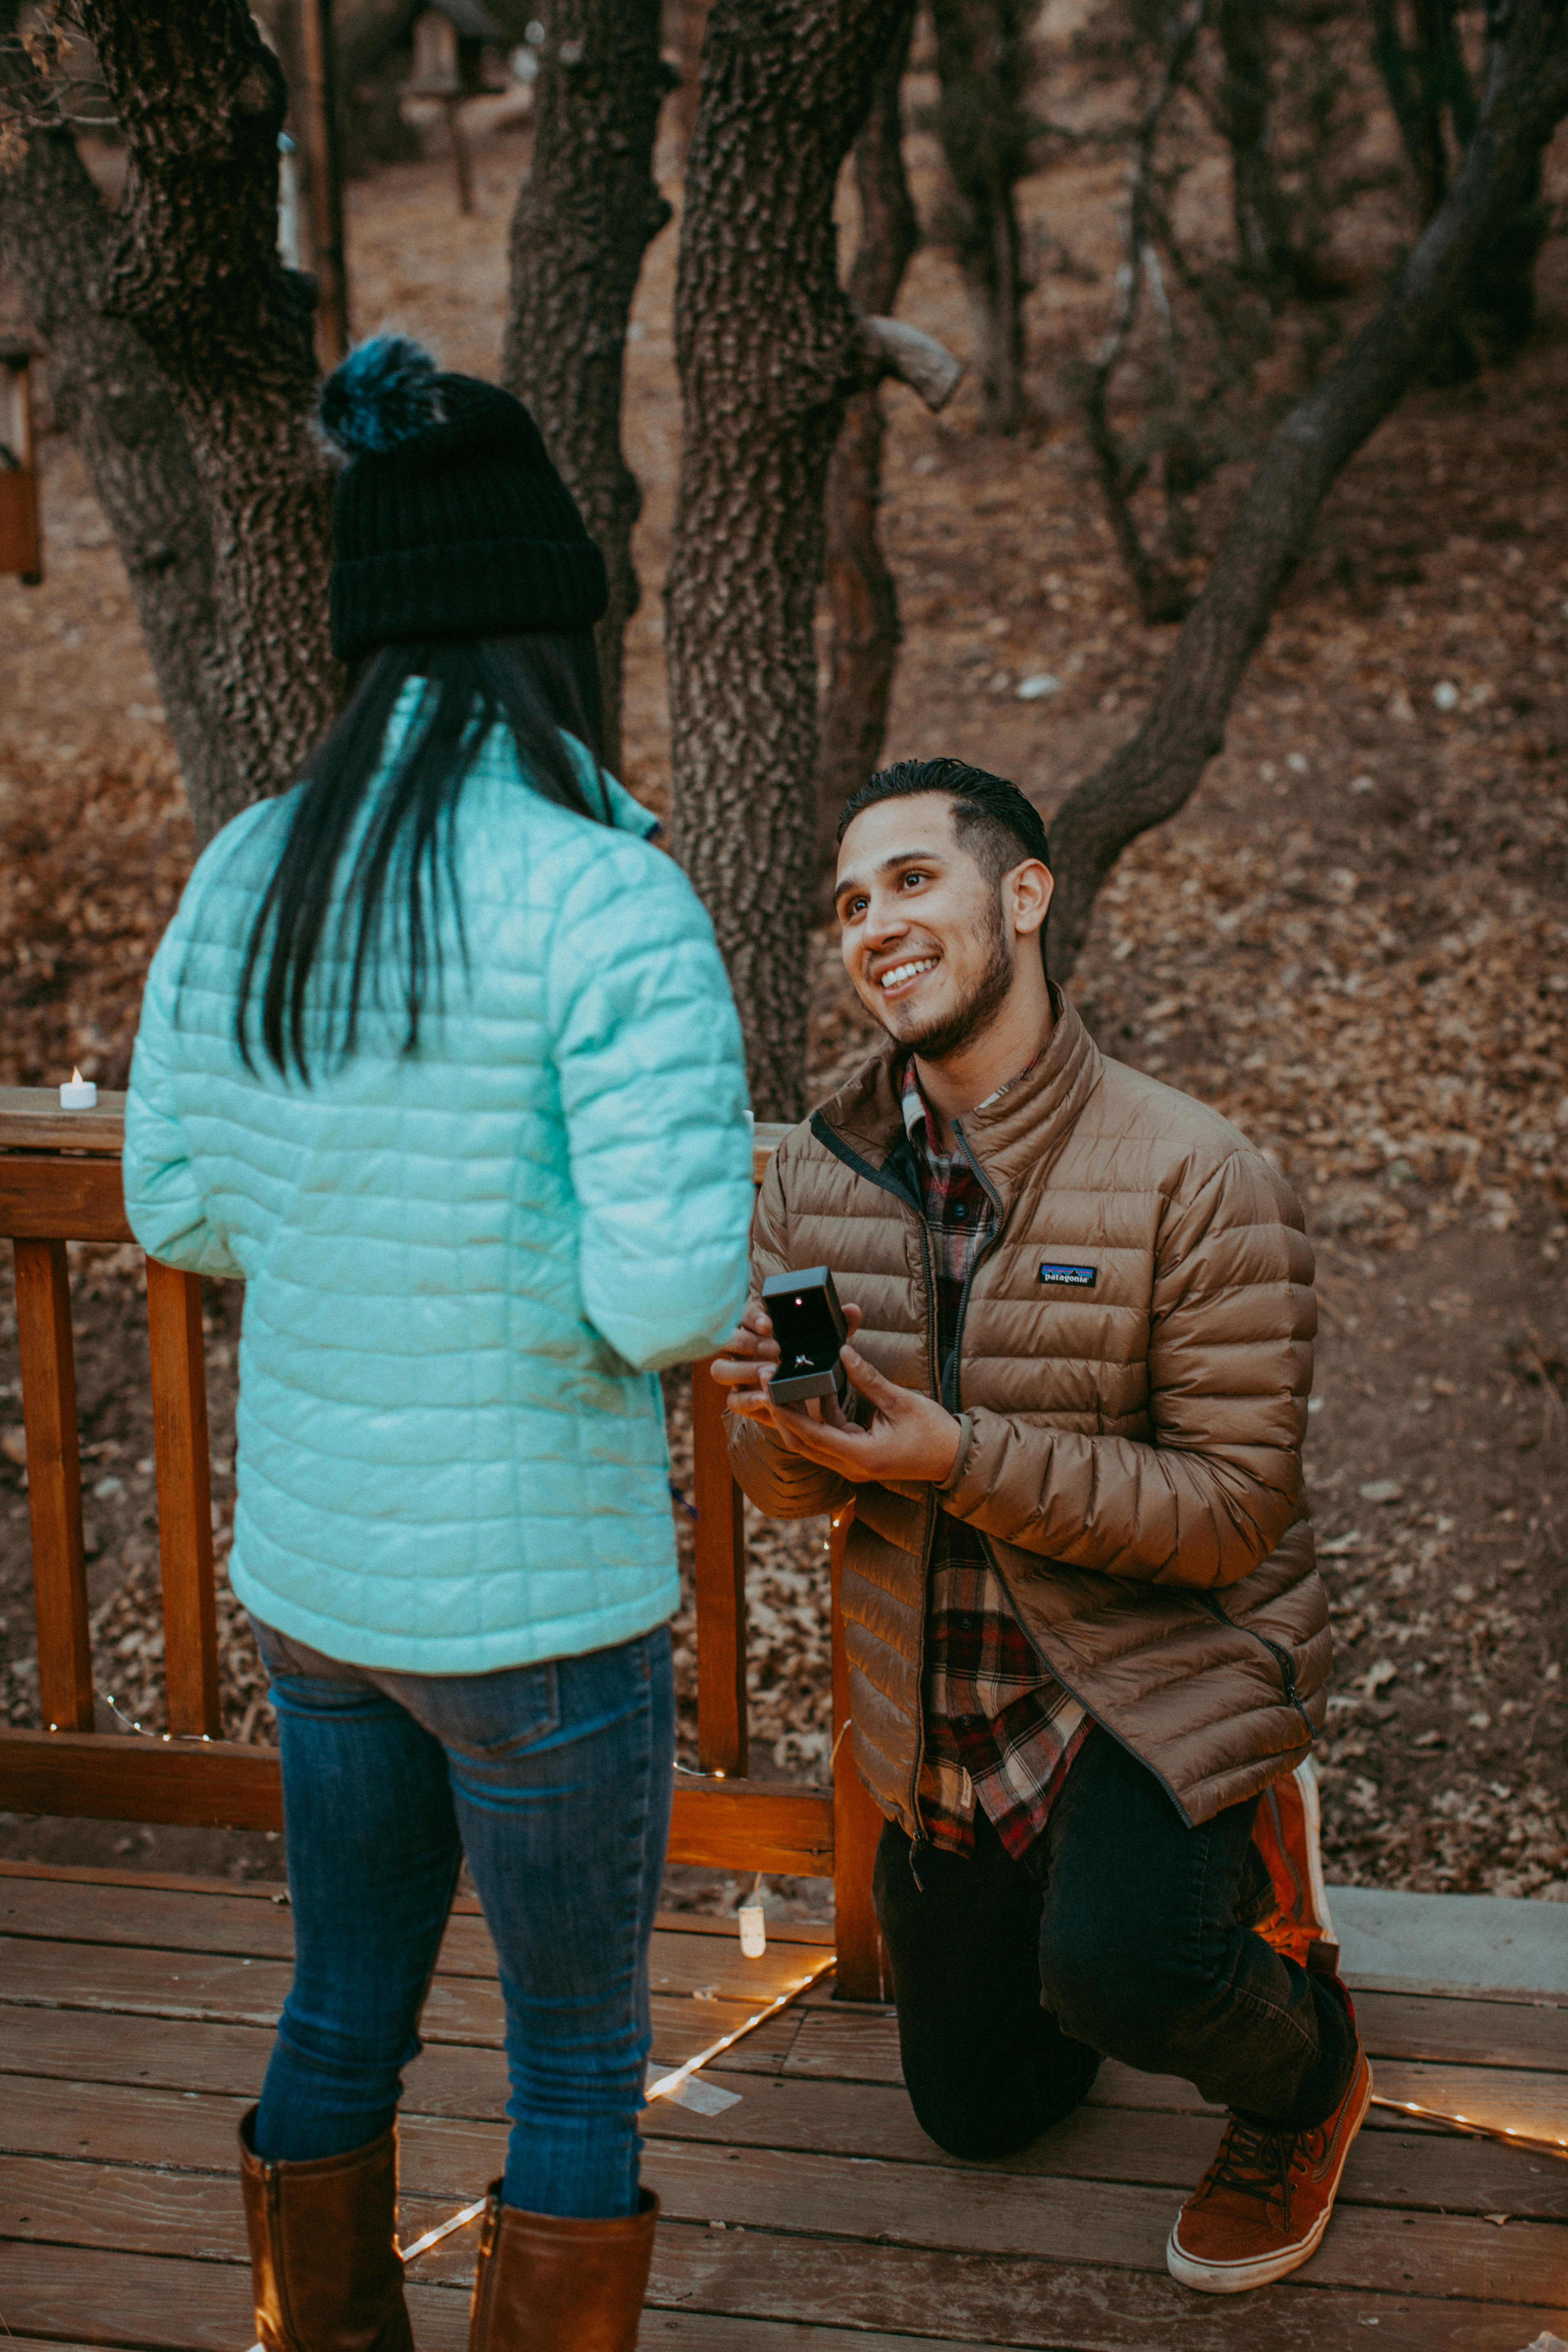 Engagement Proposal Ideas in Big Bear, CA